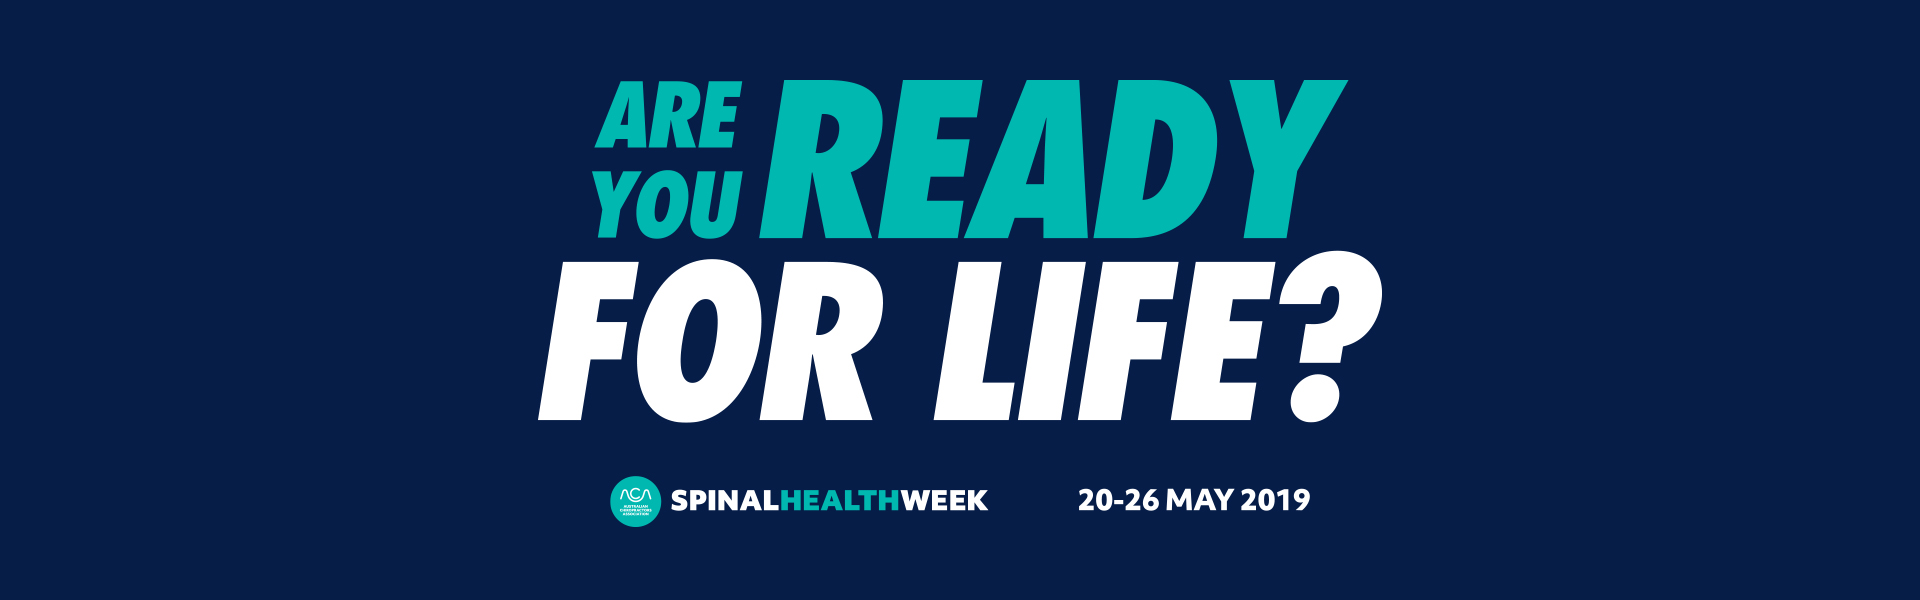 Spinal Health Week